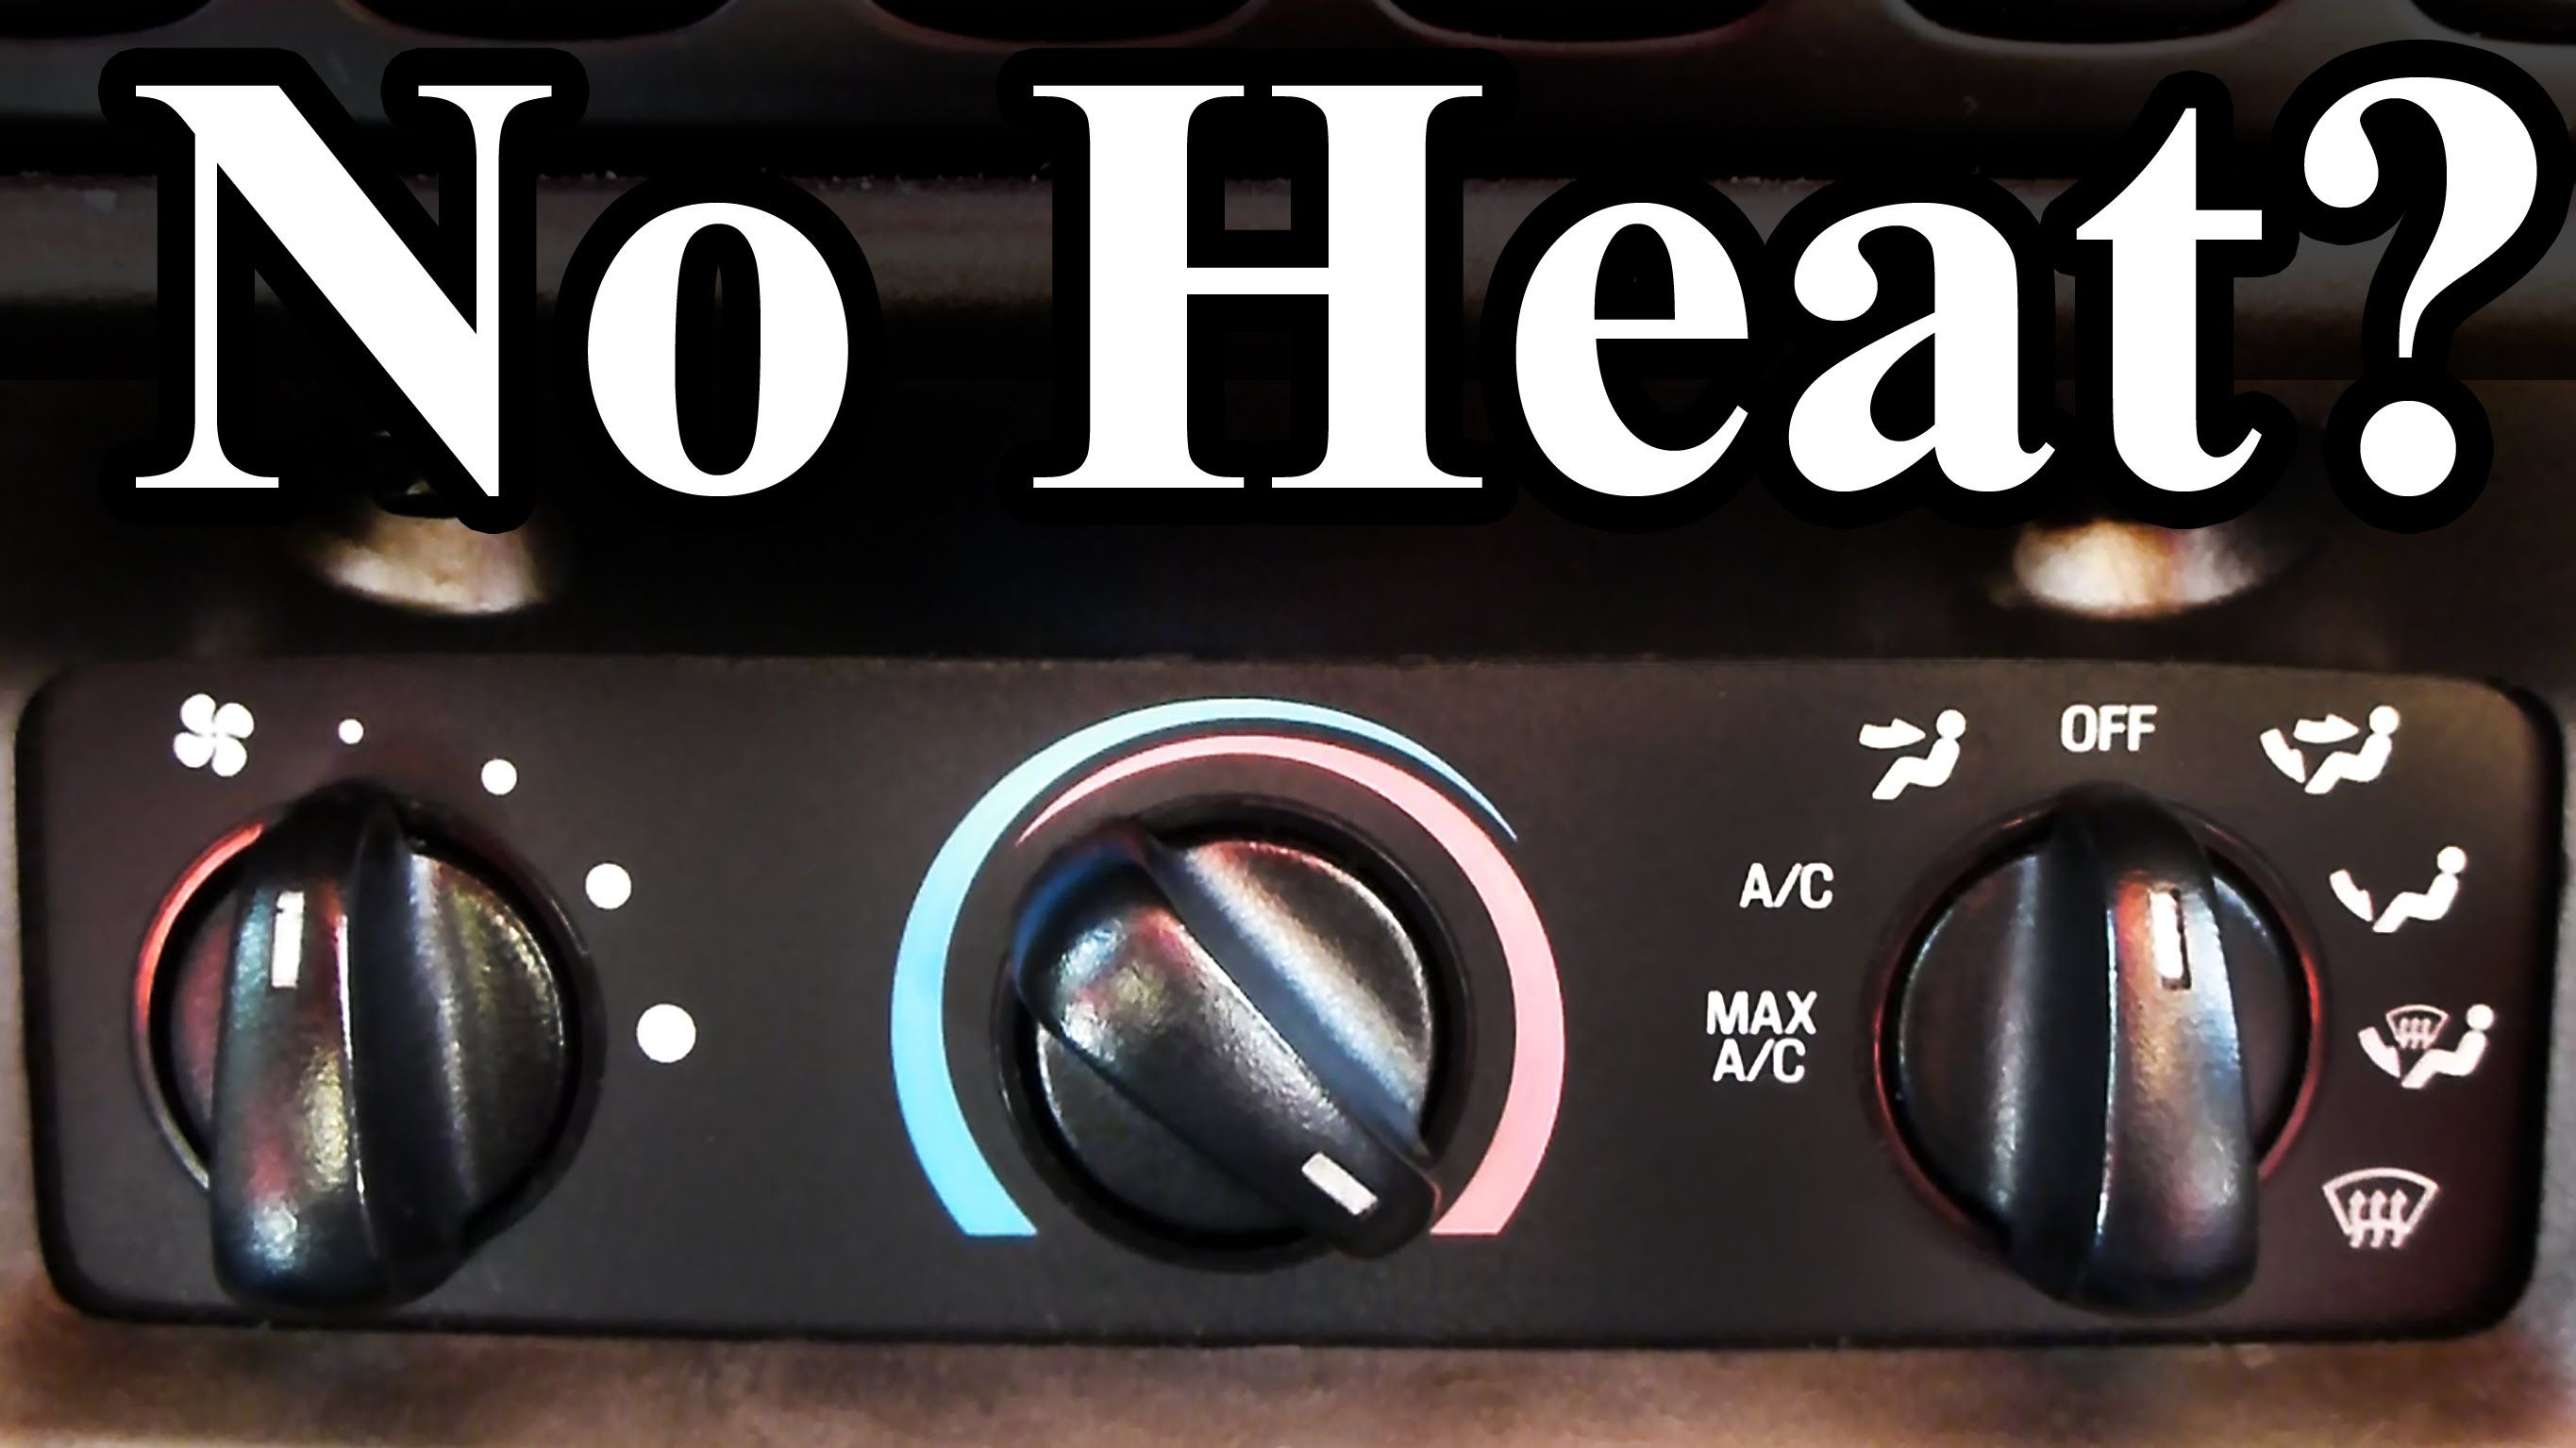 This video will show you how to fix your car's heater